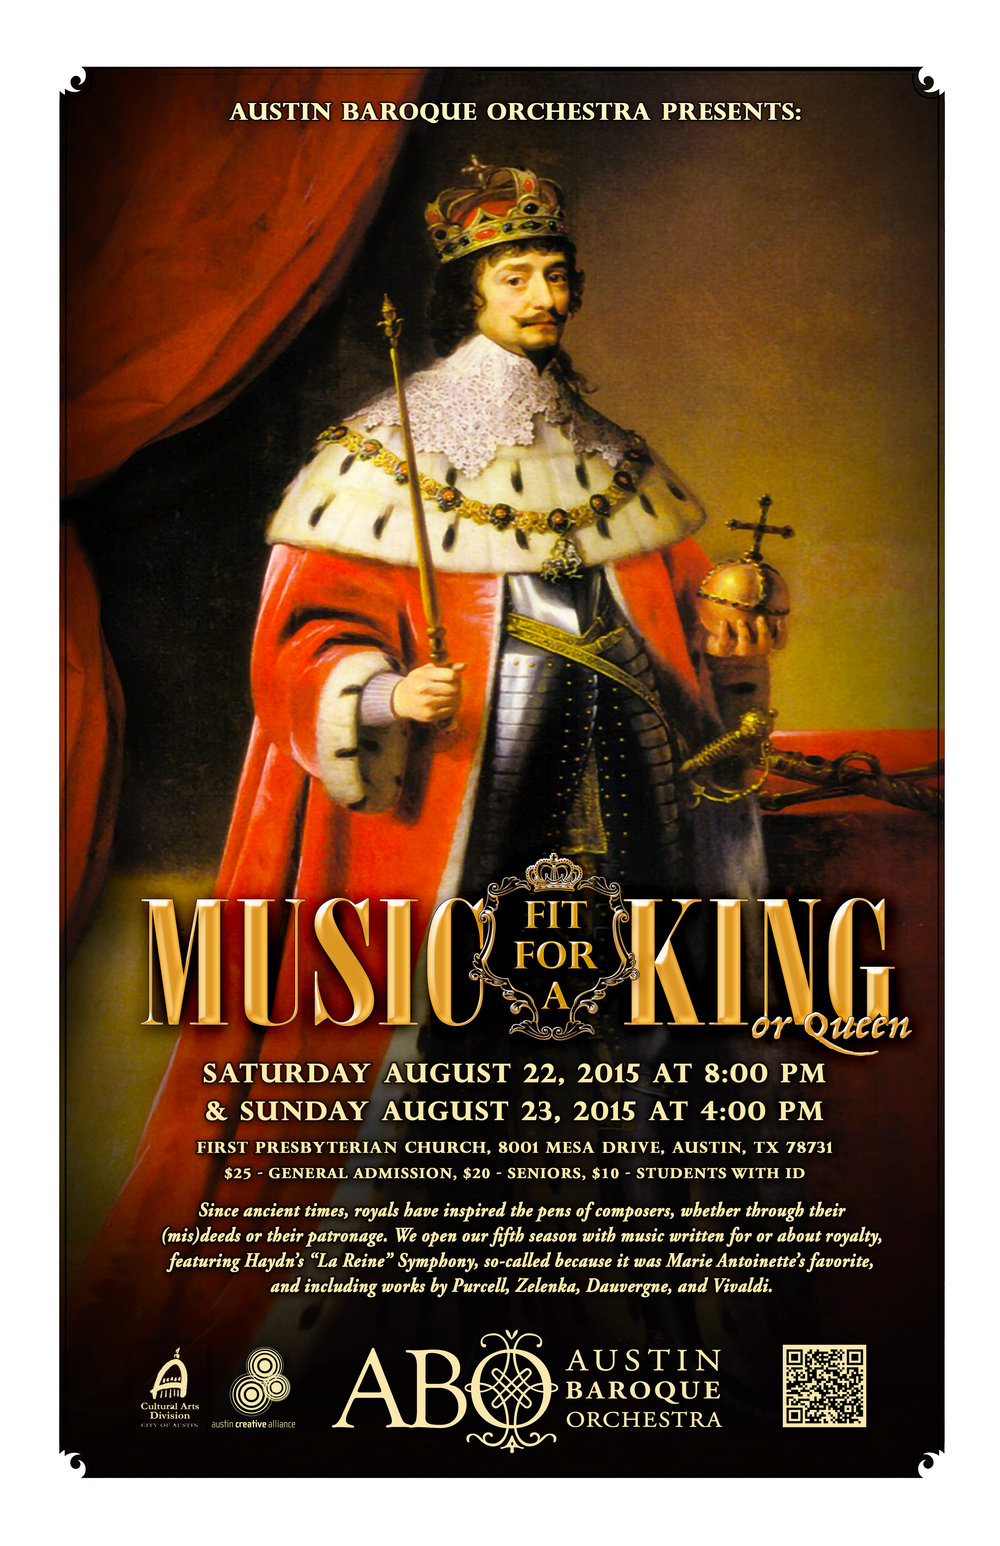 ABOPoster Fit for a King 11x17.jpg